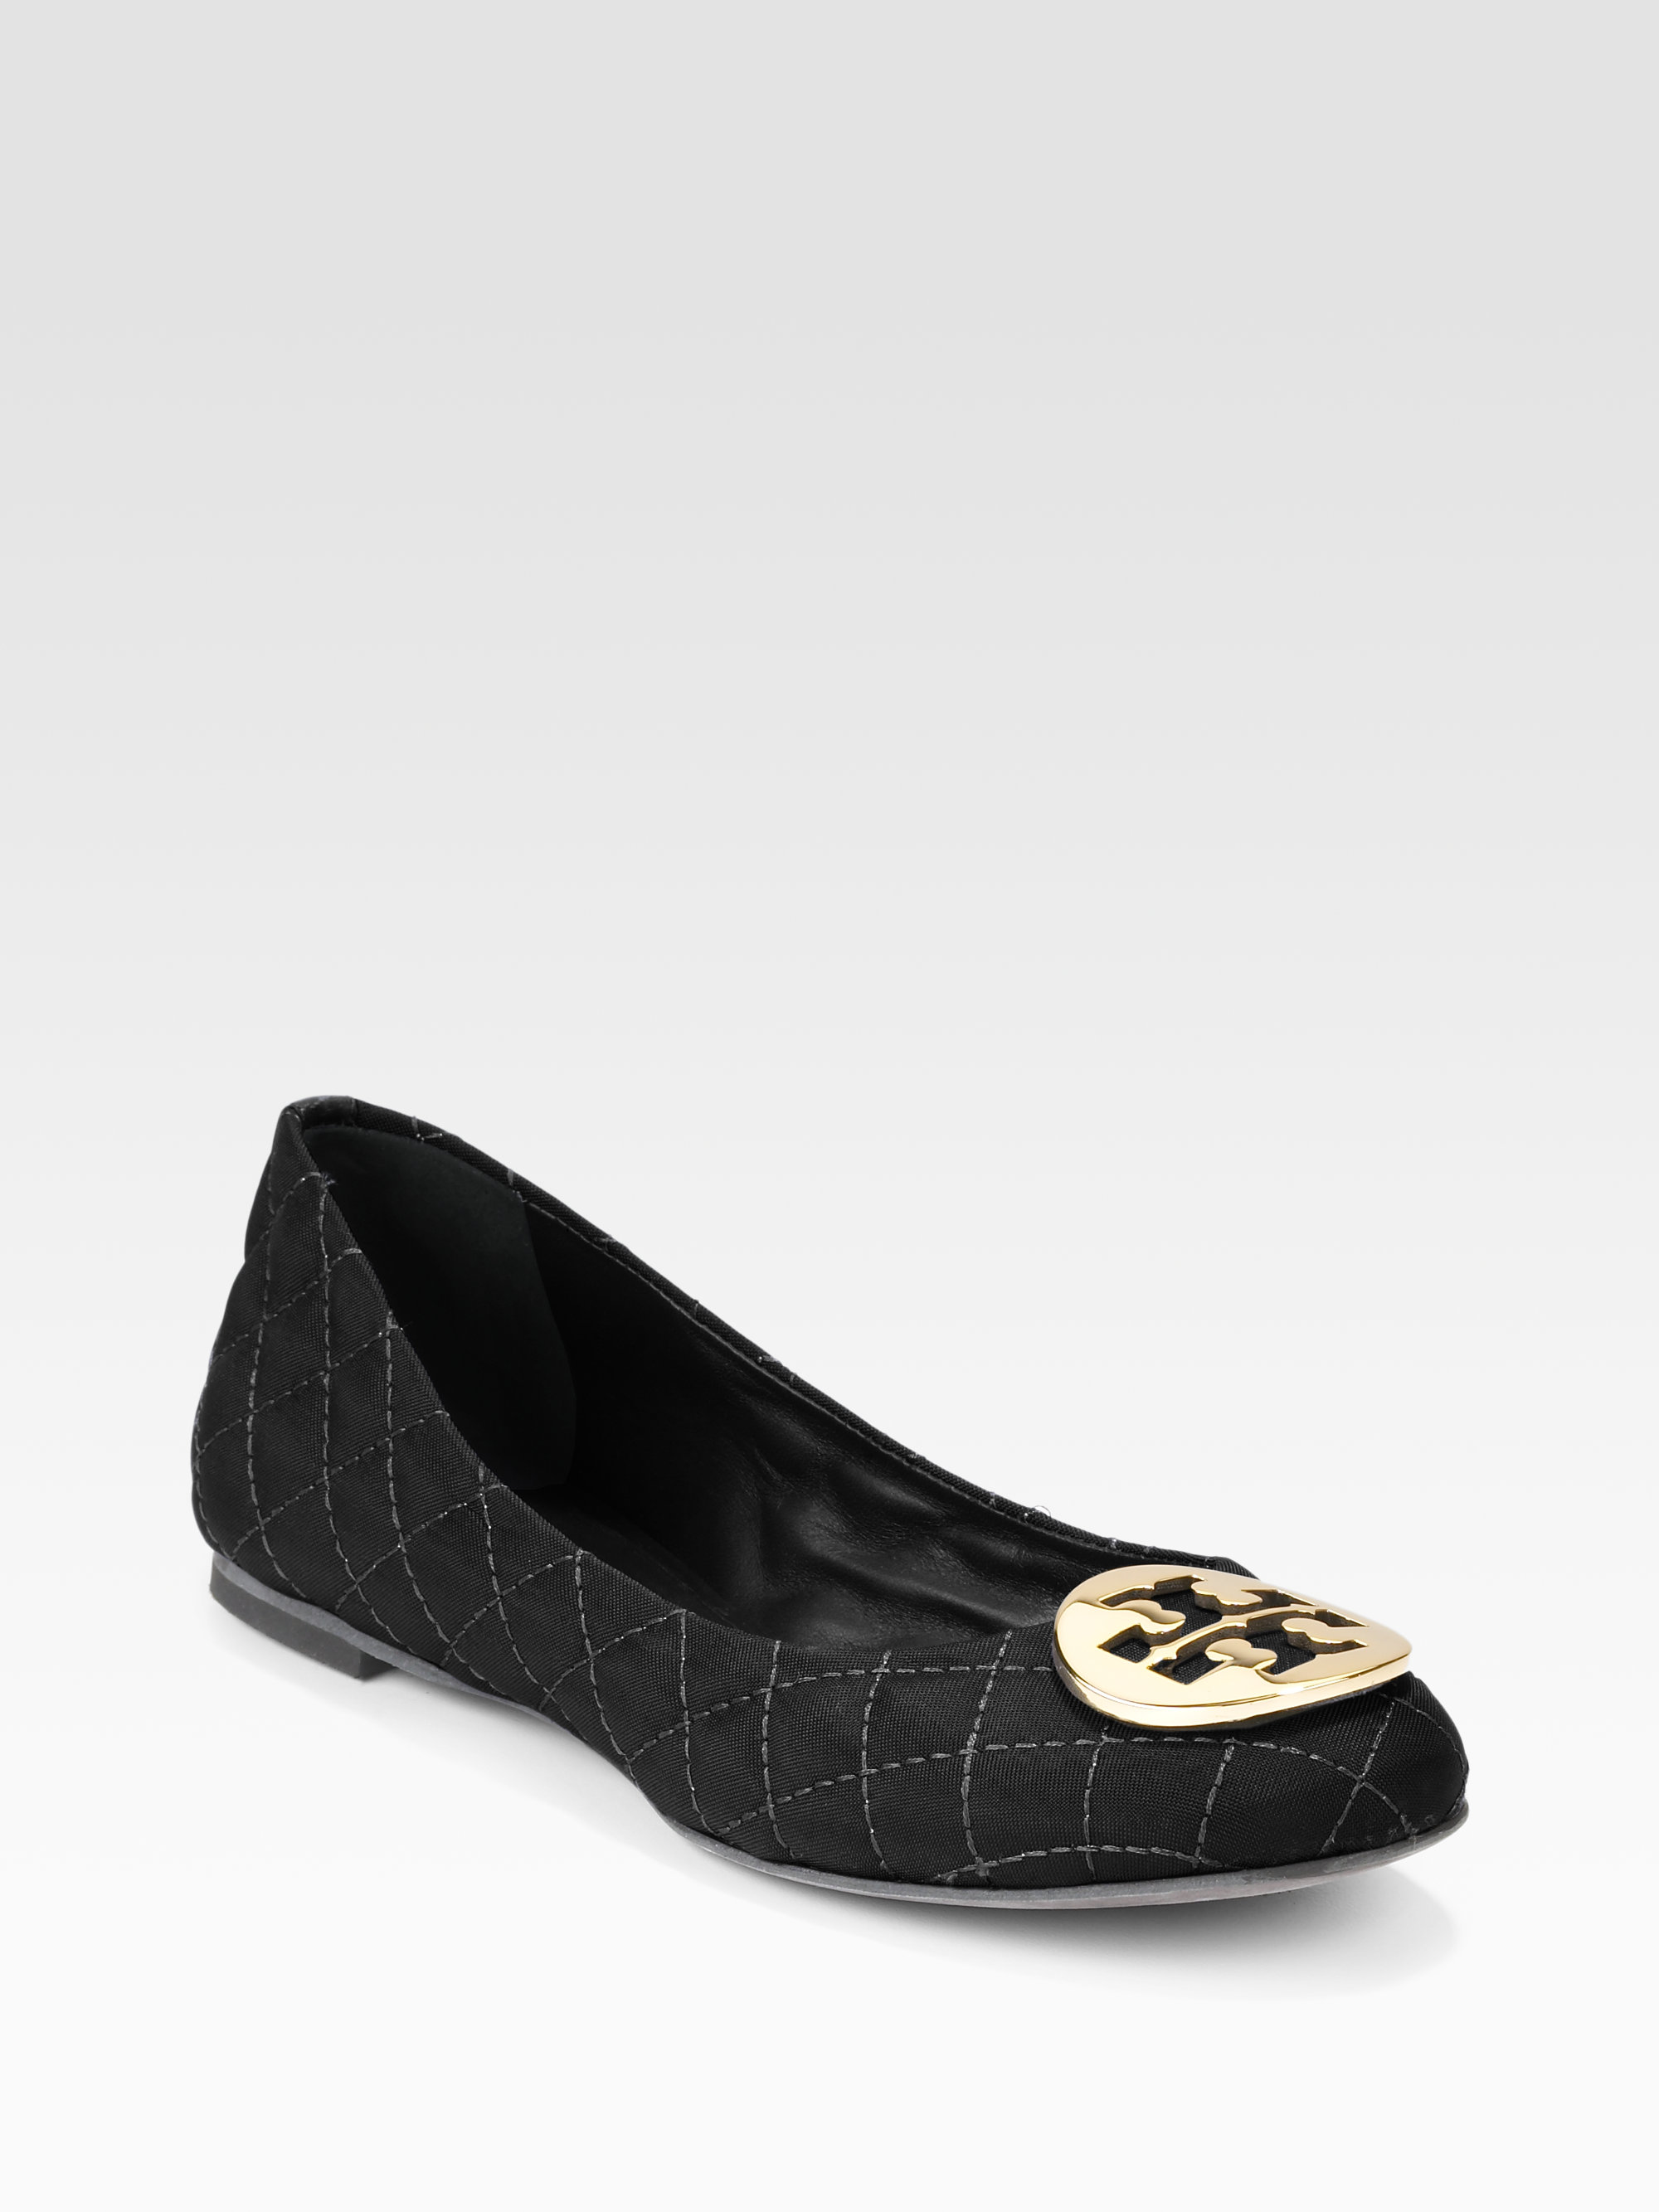 Gallery. Previously sold at: Saks Fifth Avenue · Women's Tory Burch Reva